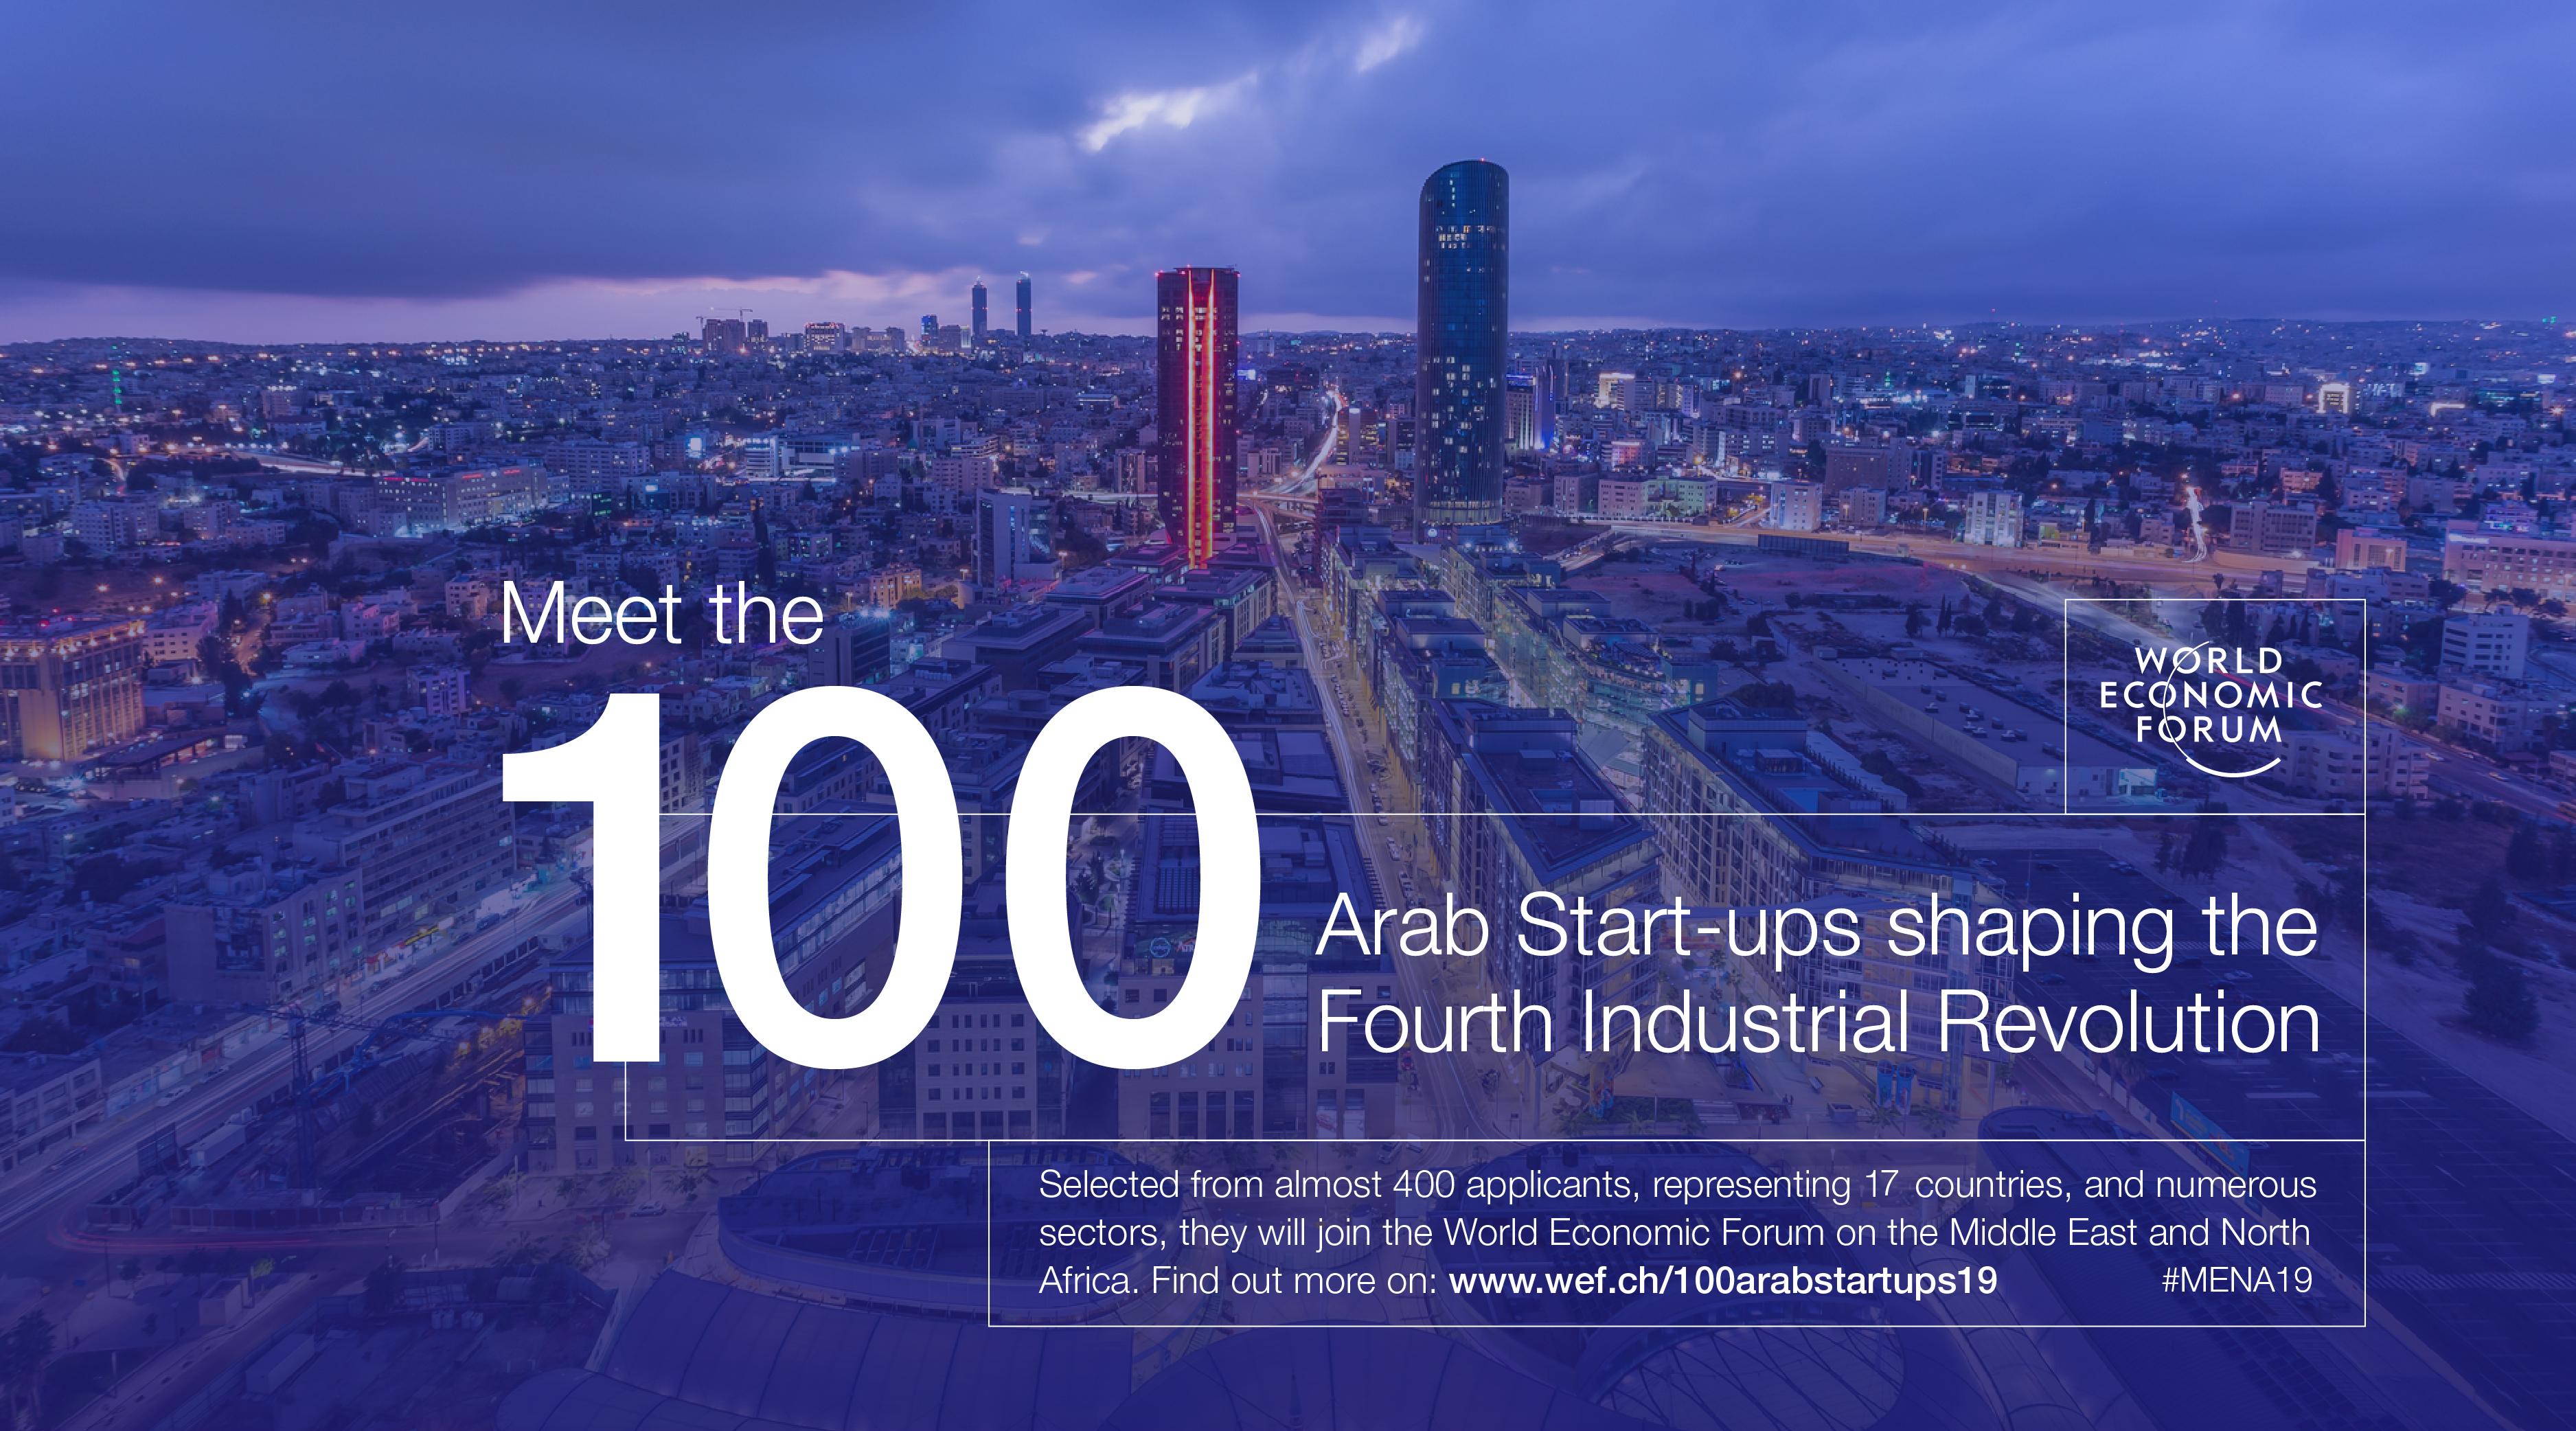 Here Are the 100 Arab Start-ups Shaping the Fourth Industrial Revolution